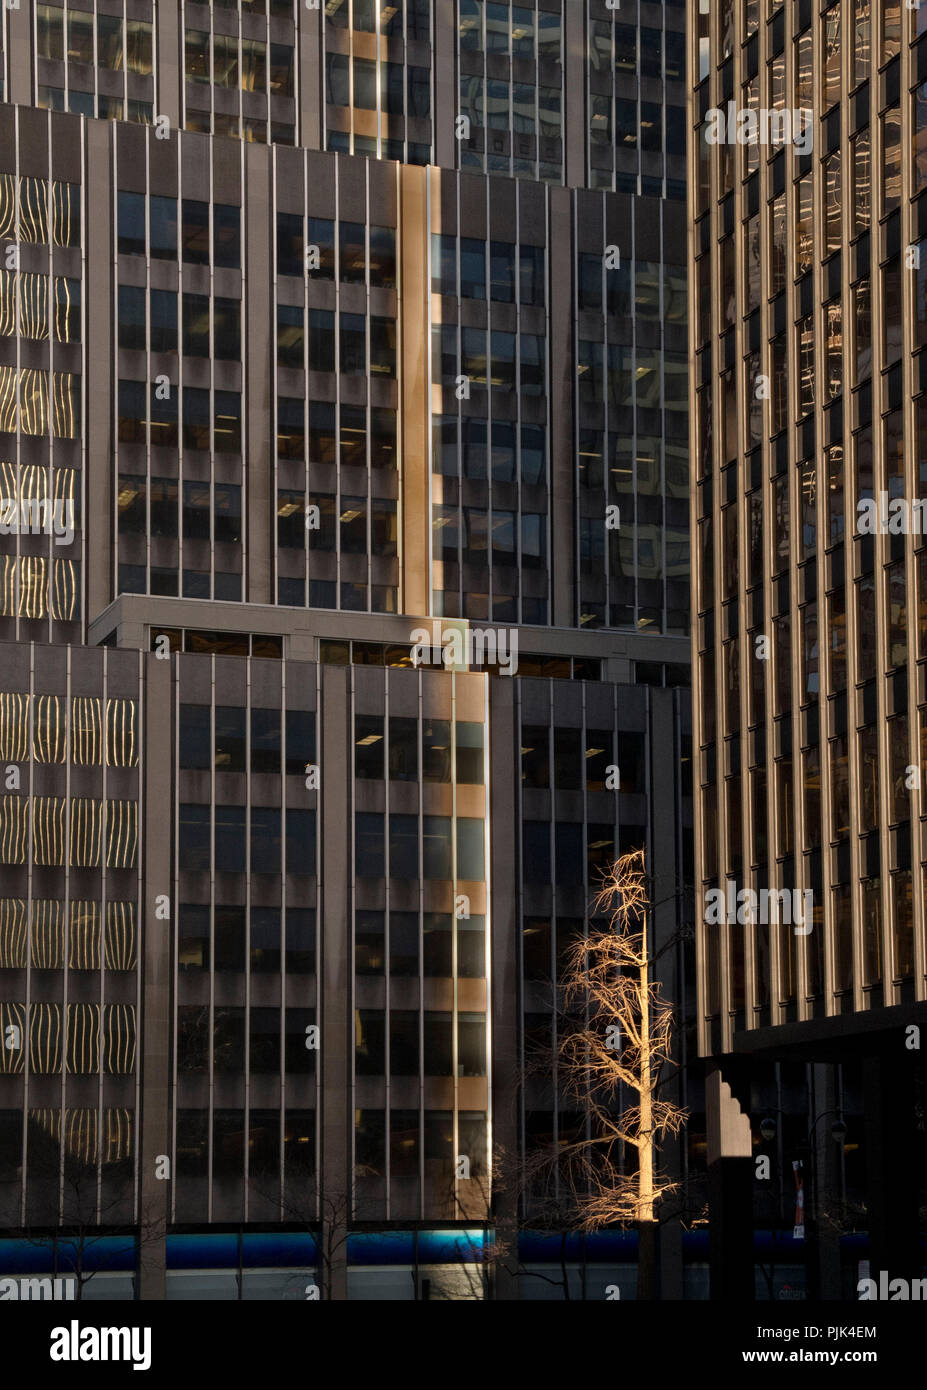 Skyscrapers and a lone leafless tree in downtown Manhattan, New York City, USA - Stock Image